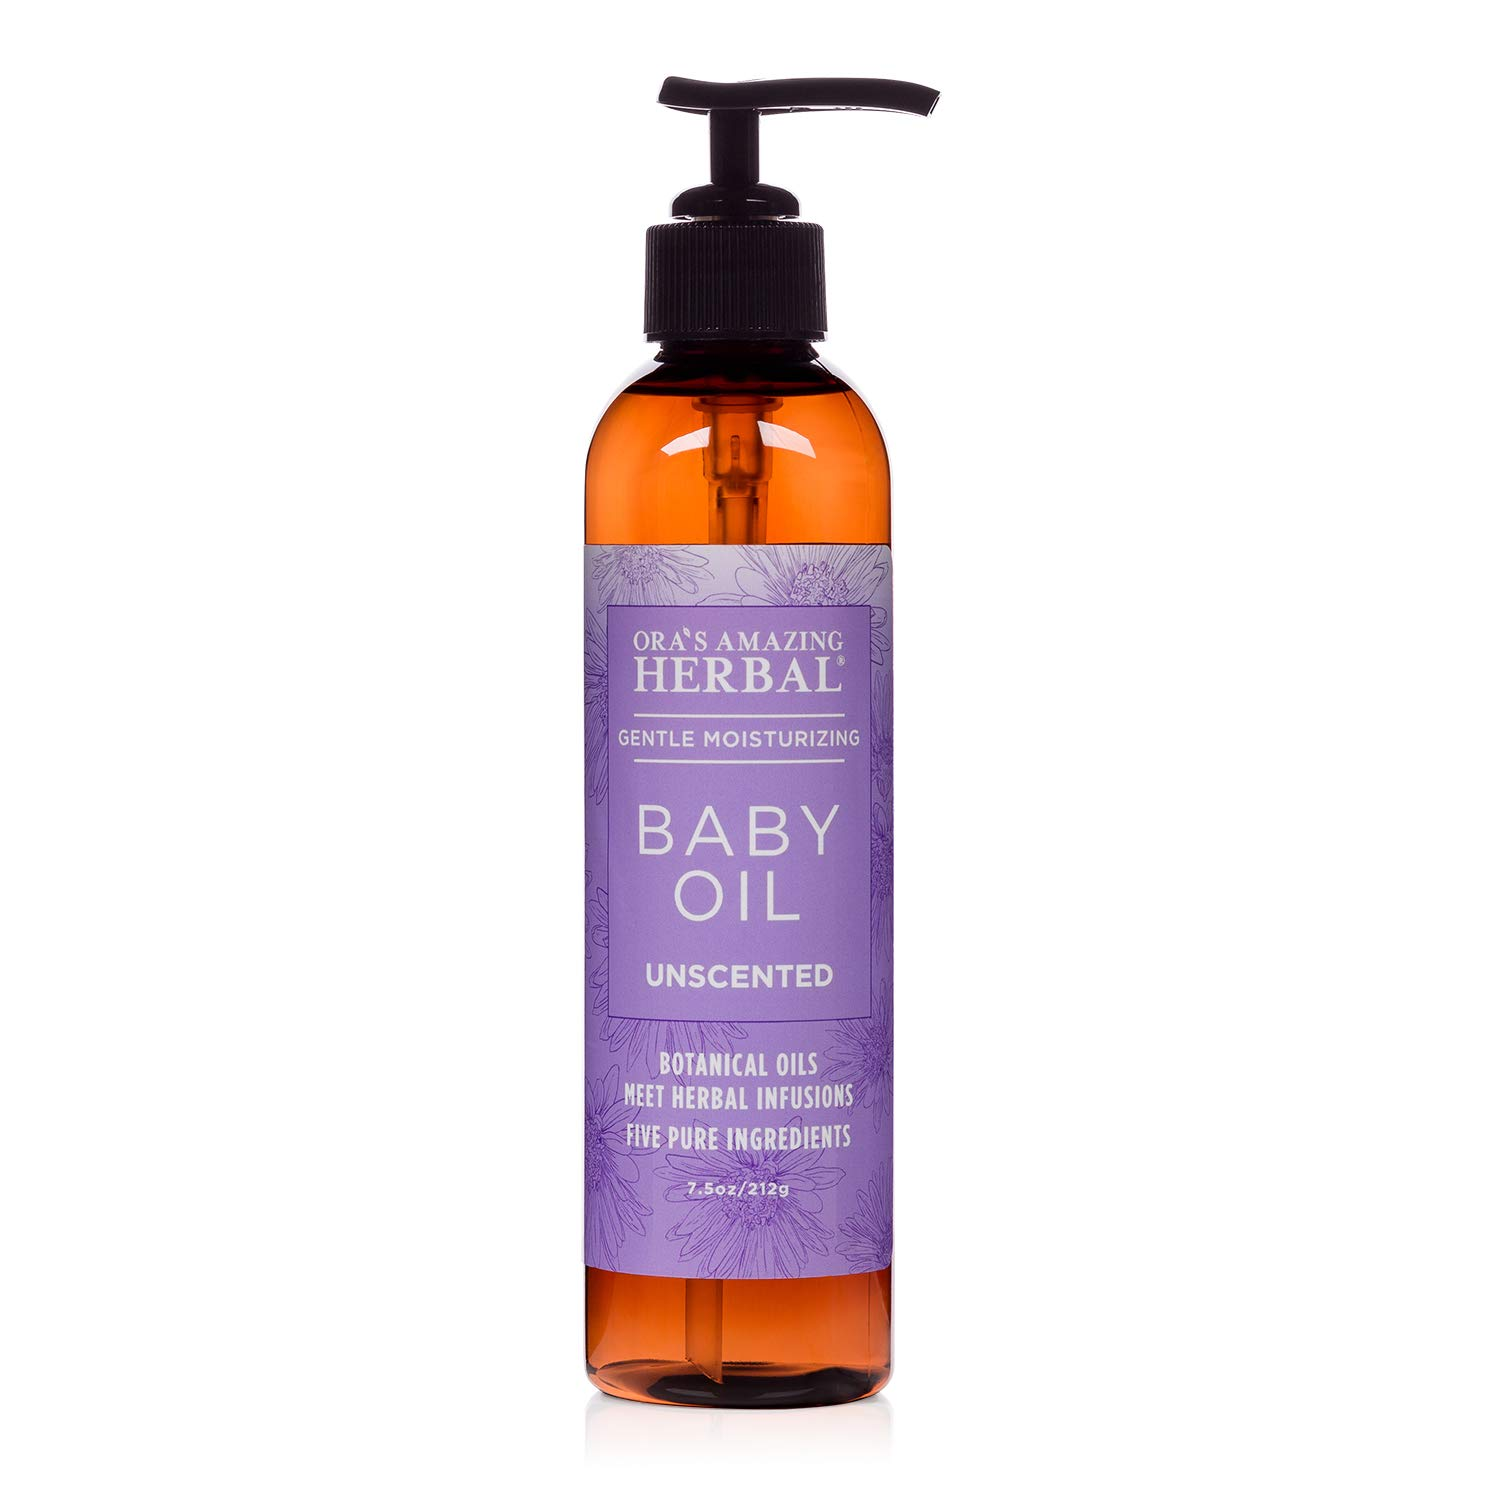 Natural Baby Oil, Natural Skin Care for Babies, Unscented Infant Massage Oil with Soothing Organic Calendula and Licorice Root, 5 Ingredients Only, Fragrance Free, Ora's Amazing Herbal by Ora's Amazing Herbal